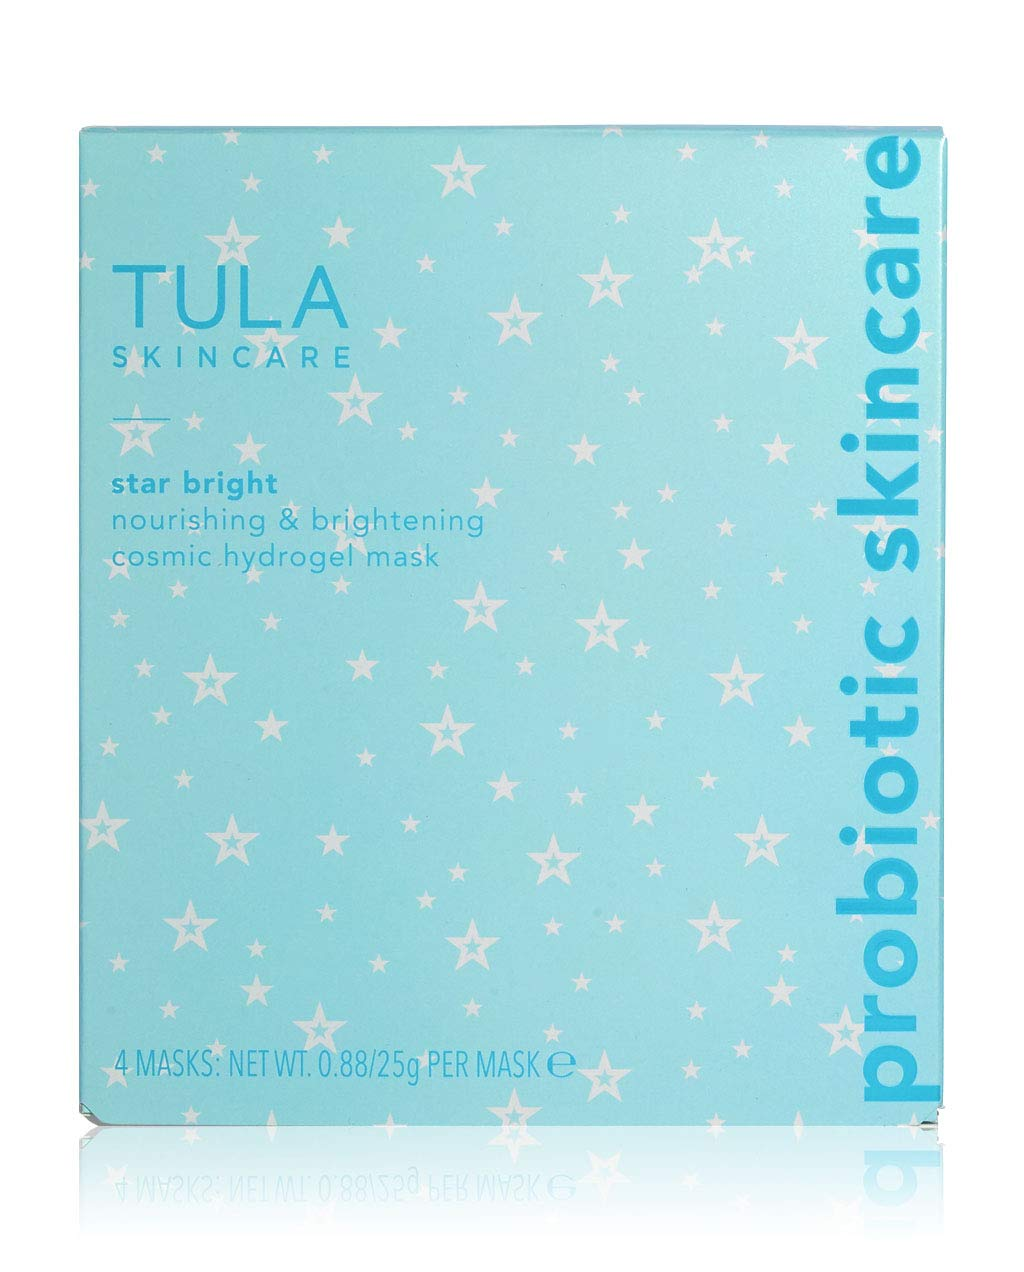 TULA Probiotic Skin Care Star Bright Nourishing & Brightening Hydrogel Mask | Face Mask, Sheet Mask that Gives a Boost of Cosmic Glow and Hydration, Contains Grapefruit and Chamomile | Pack of 4